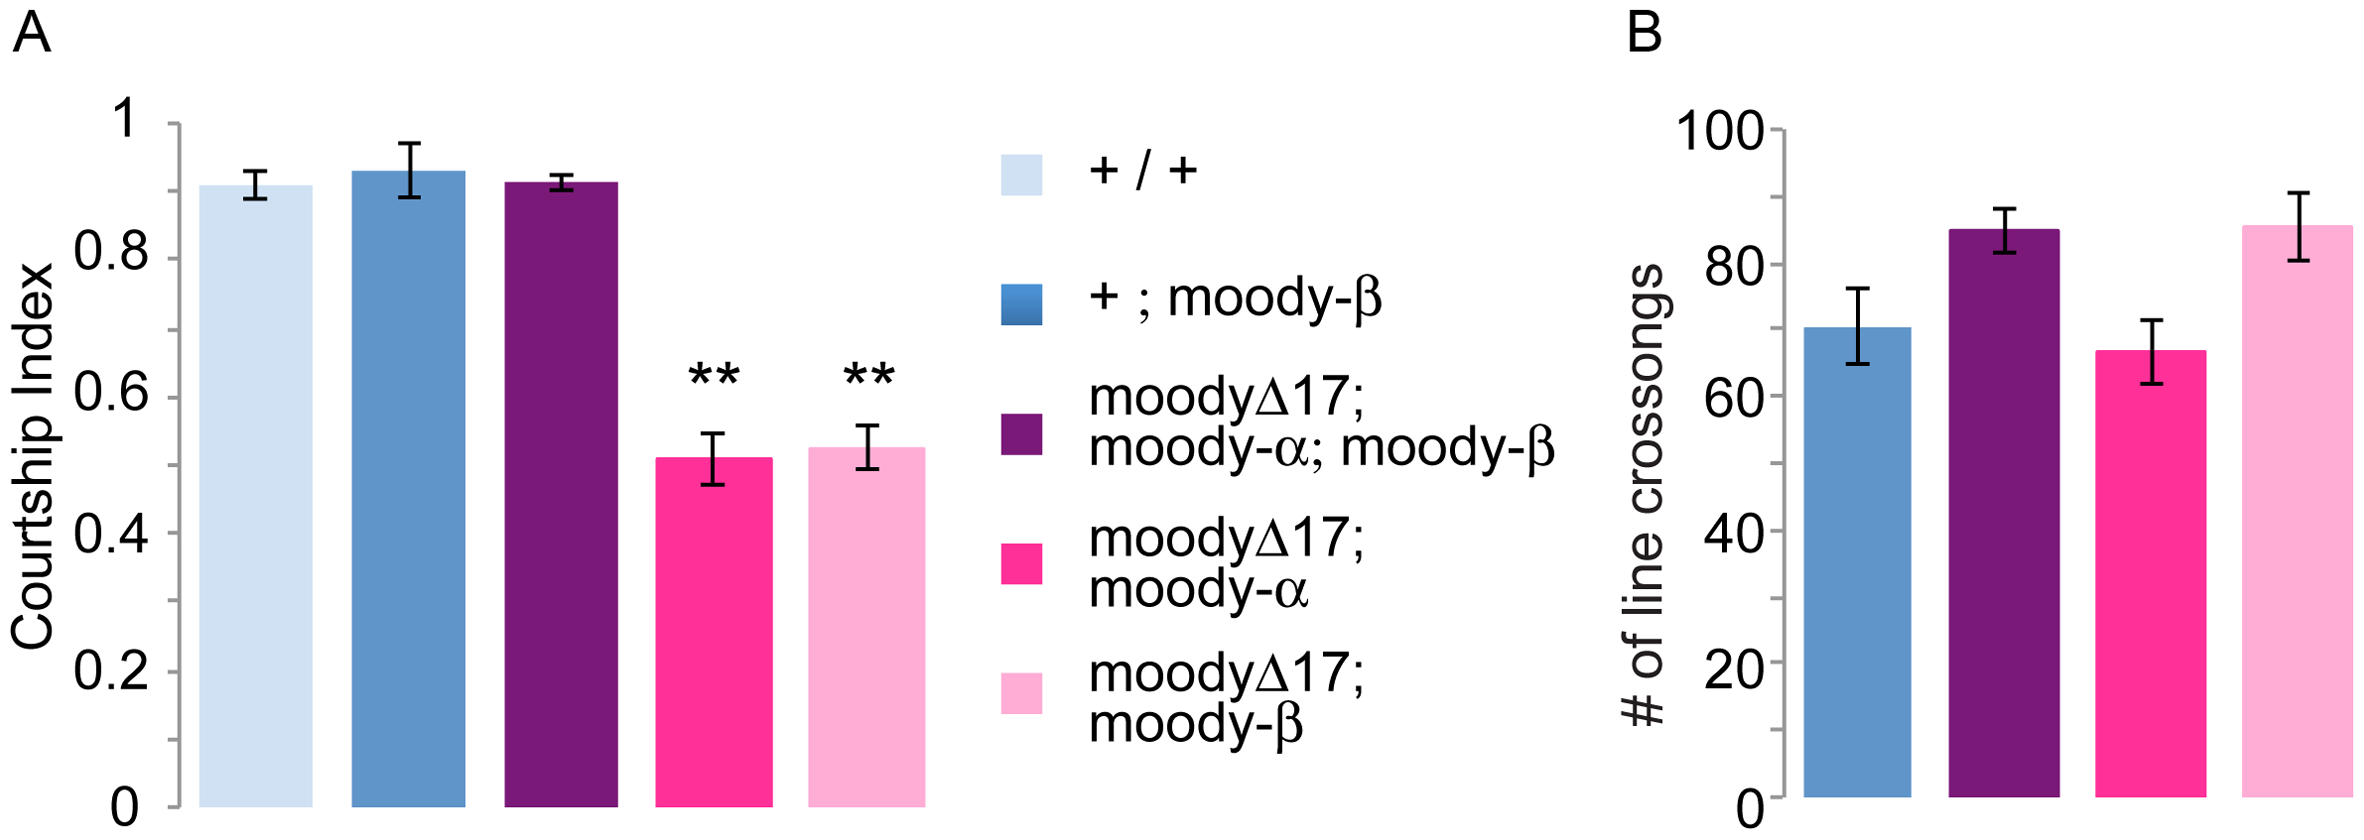 <i>moody-α</i> and <i>moody-β</i> mutants have courtship defects.